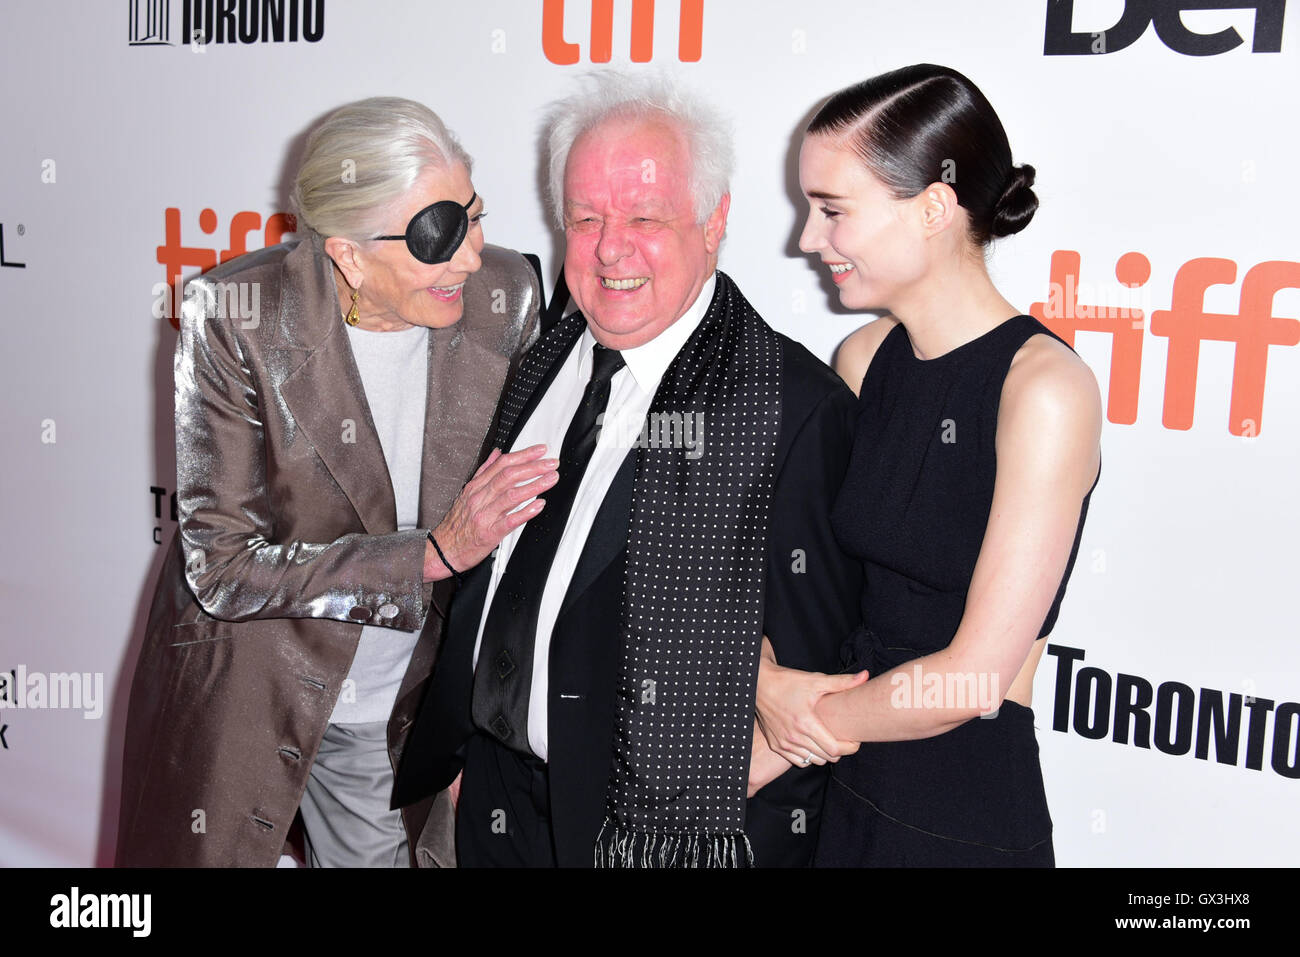 Toronto, Ontario, Canada. 15th Sep, 2016. Actress VANESSA REDGRAVE, director JIM SHERIDAN and actress ROONEY MARA - Stock Image